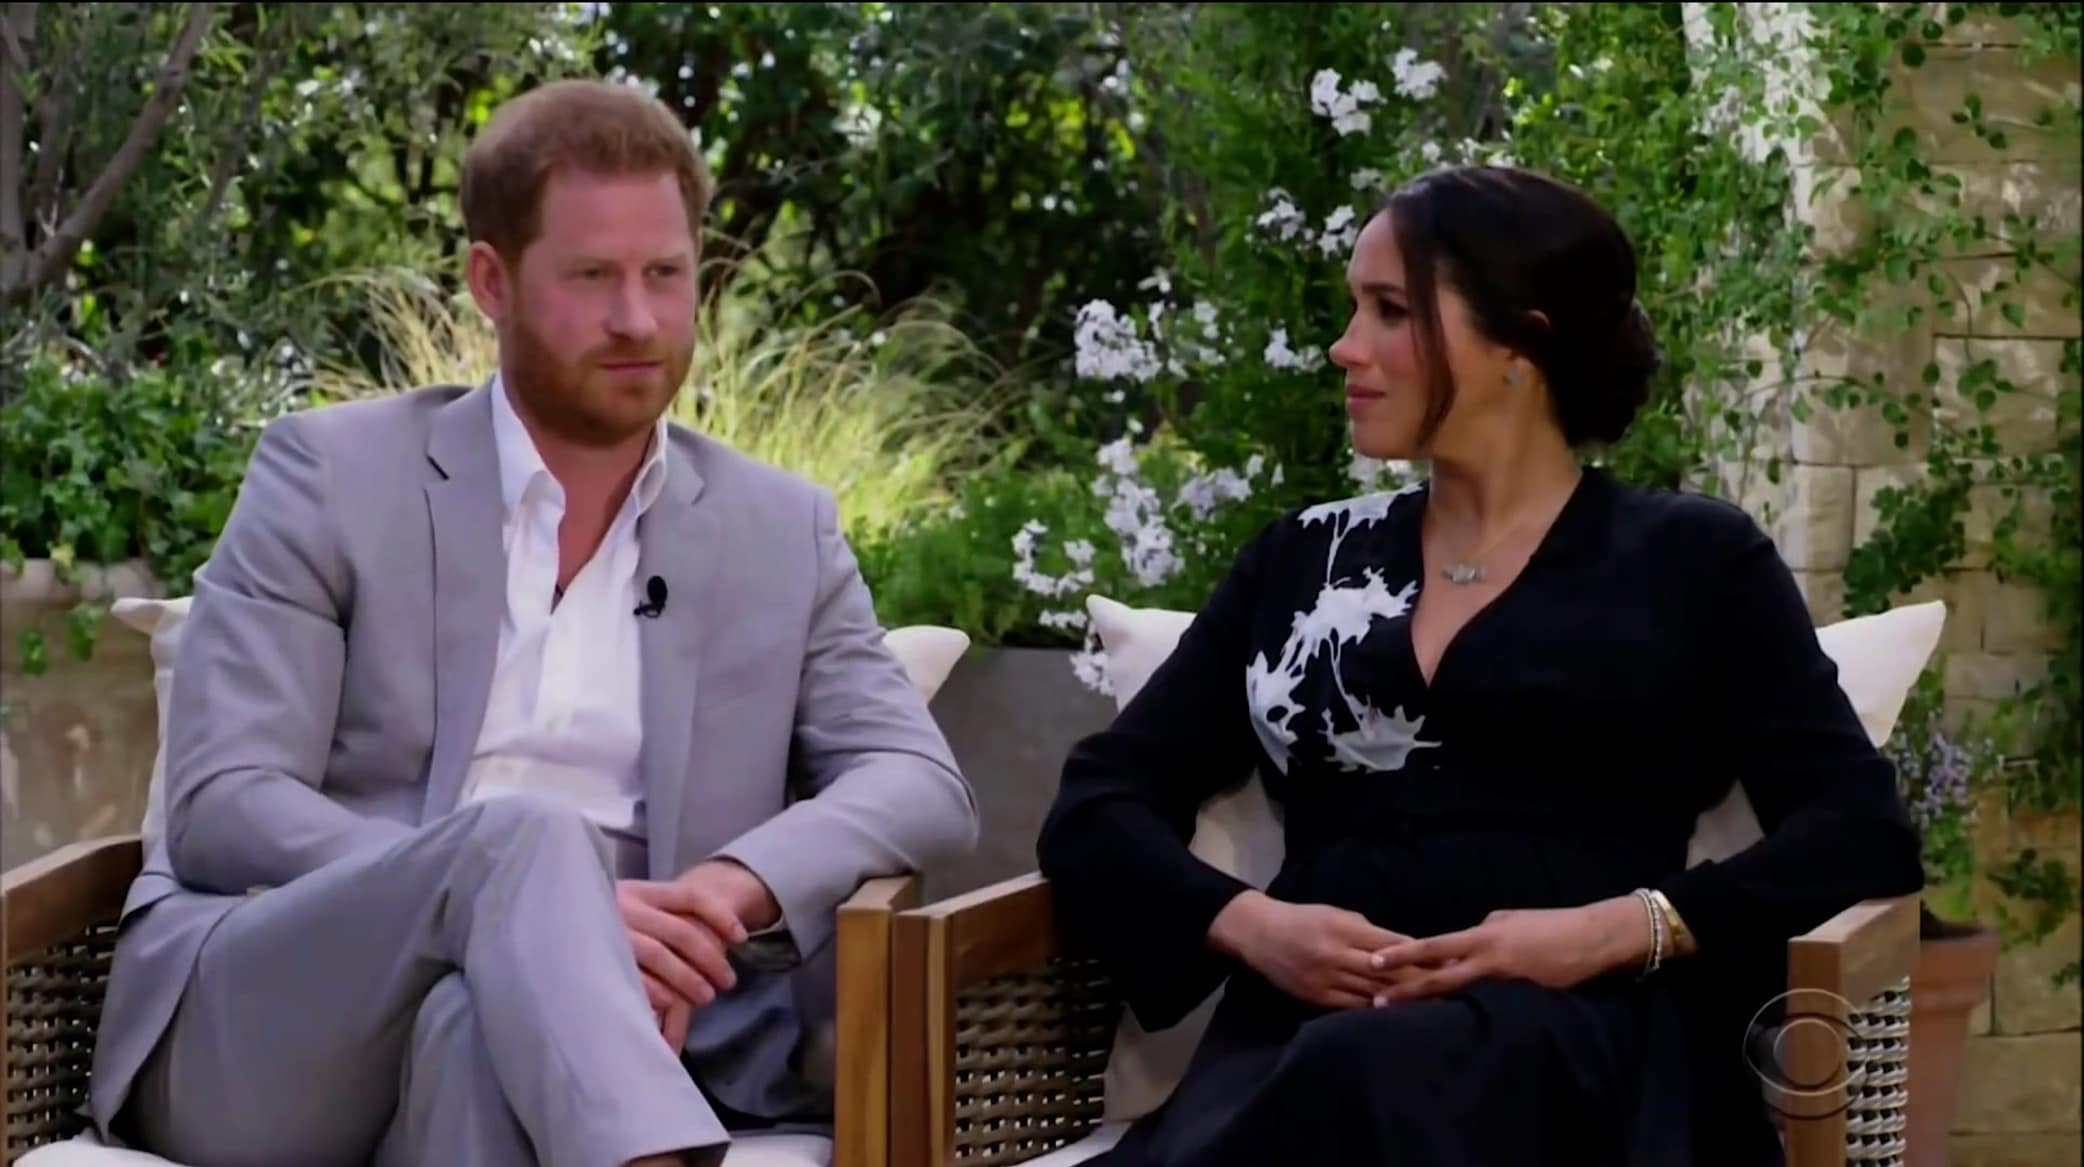 Prince Harry and Meghan Markle were reportedly not paid for their interview with Oprah Winfrey